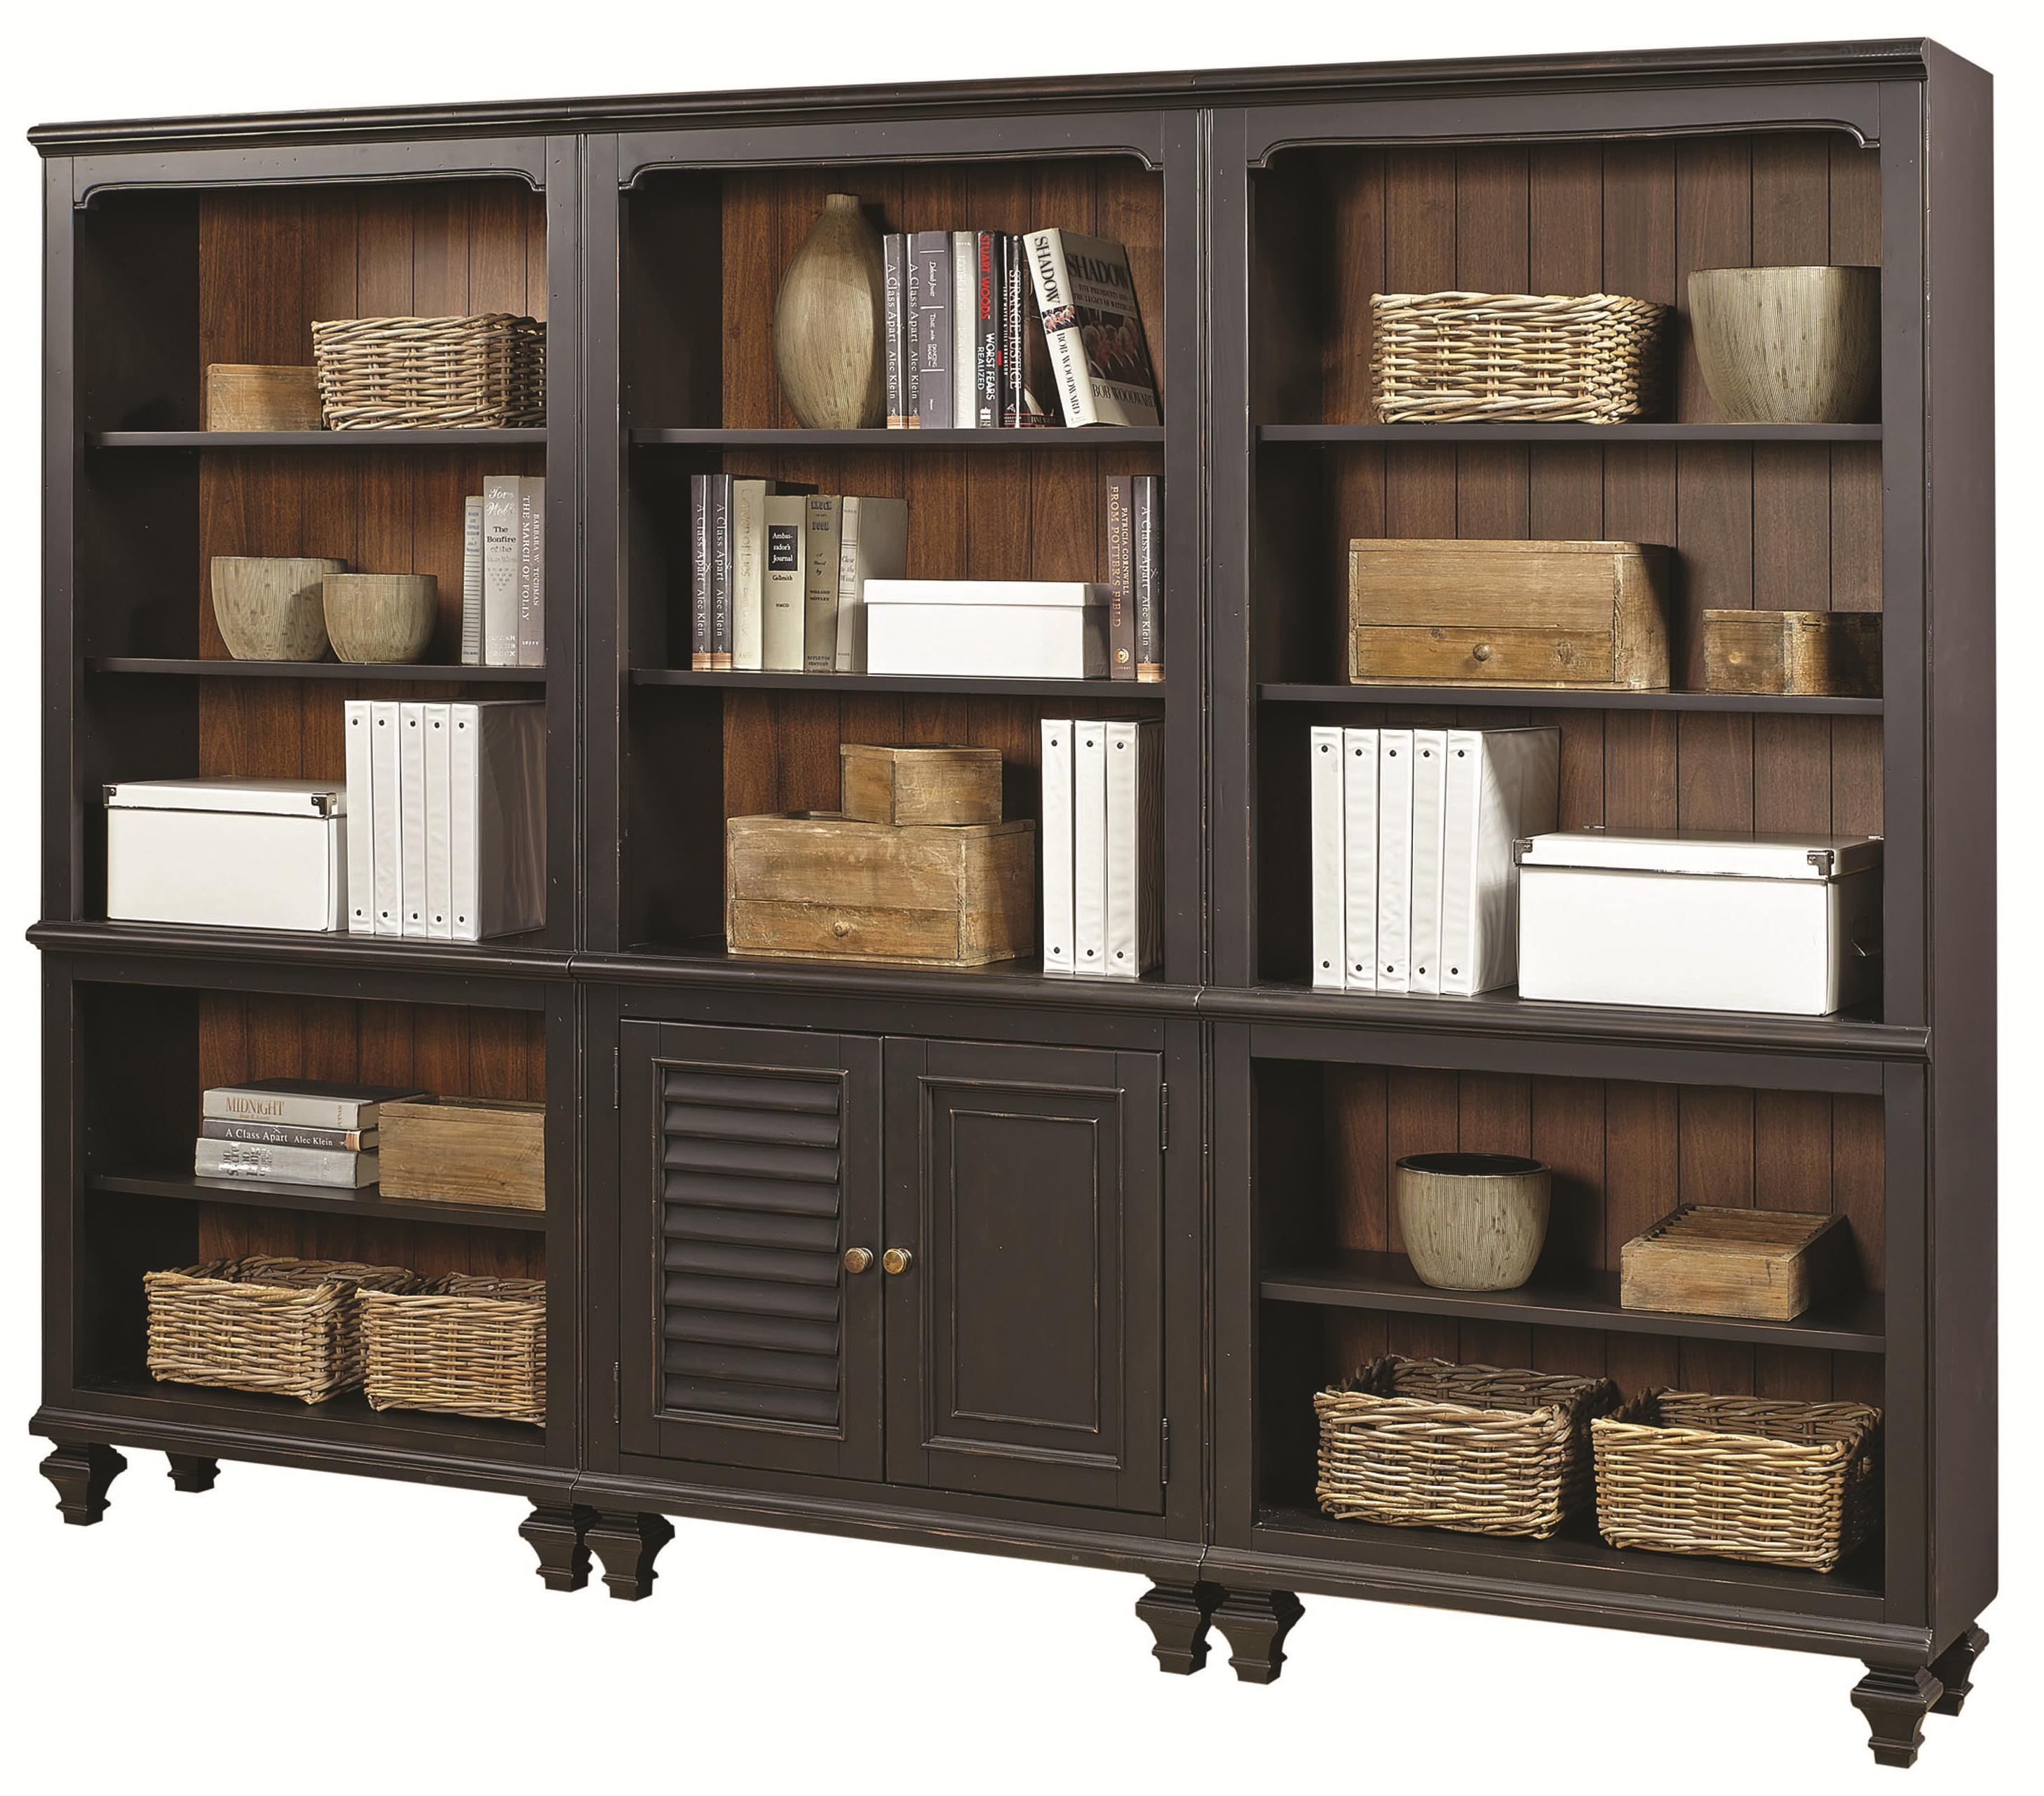 Aspenhome Ravenwood Bookcase Combination - Item Number: I65-332+2x333